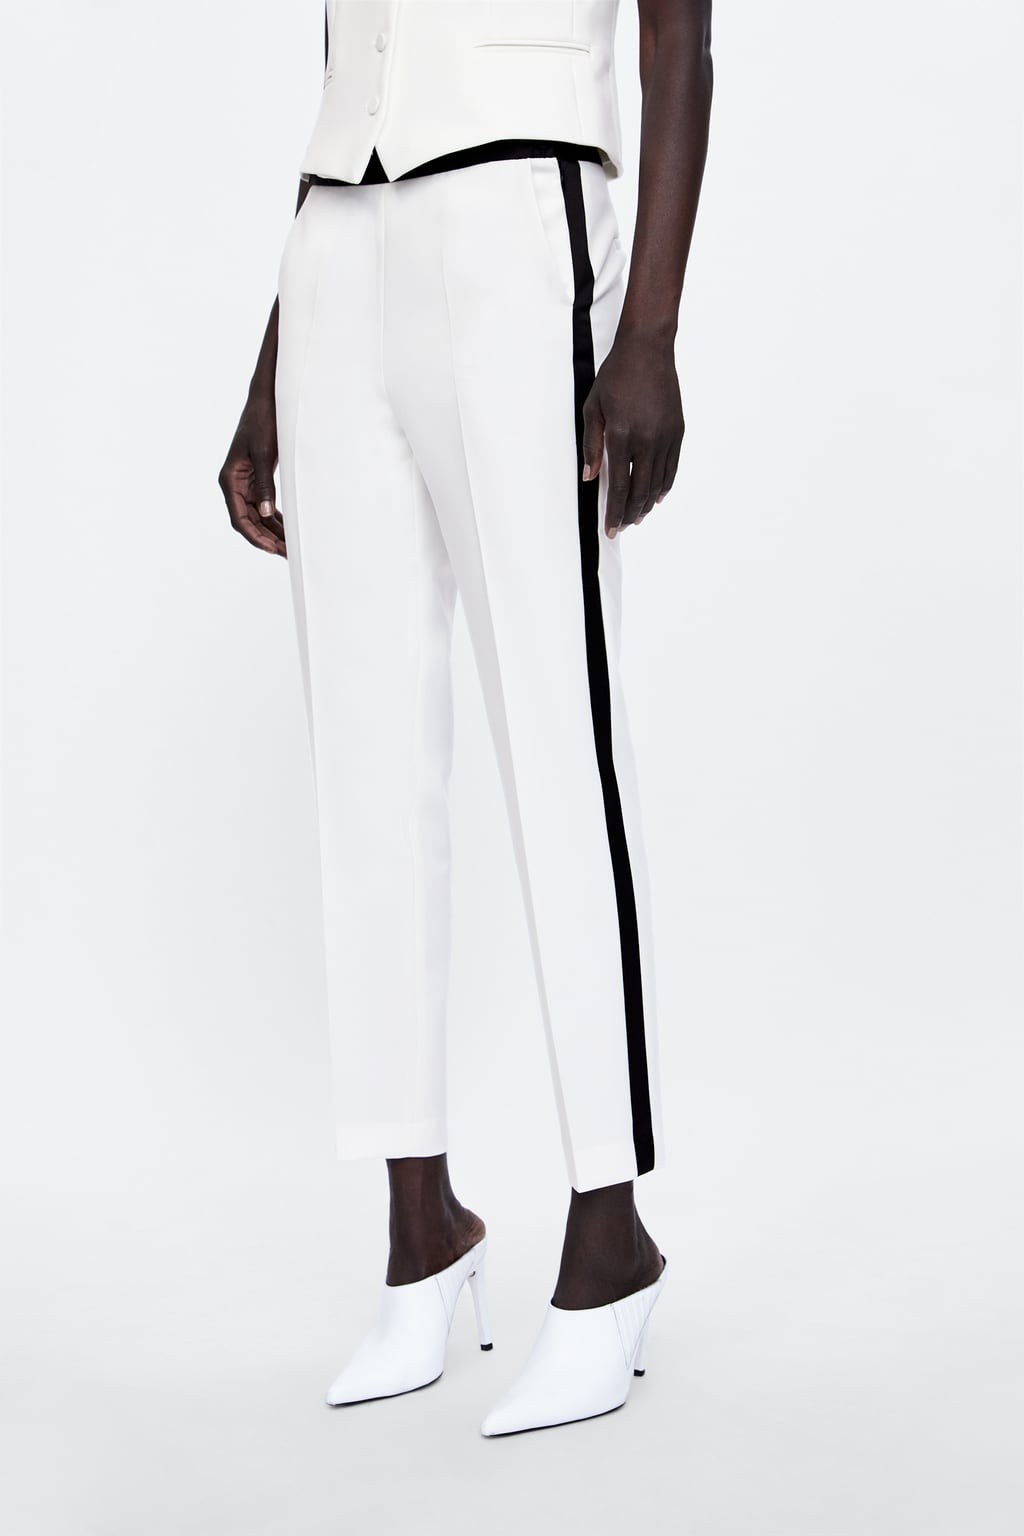 https://ufonomore.com/recently-added/zara-contrasting-tuxedo-trousers-in-white